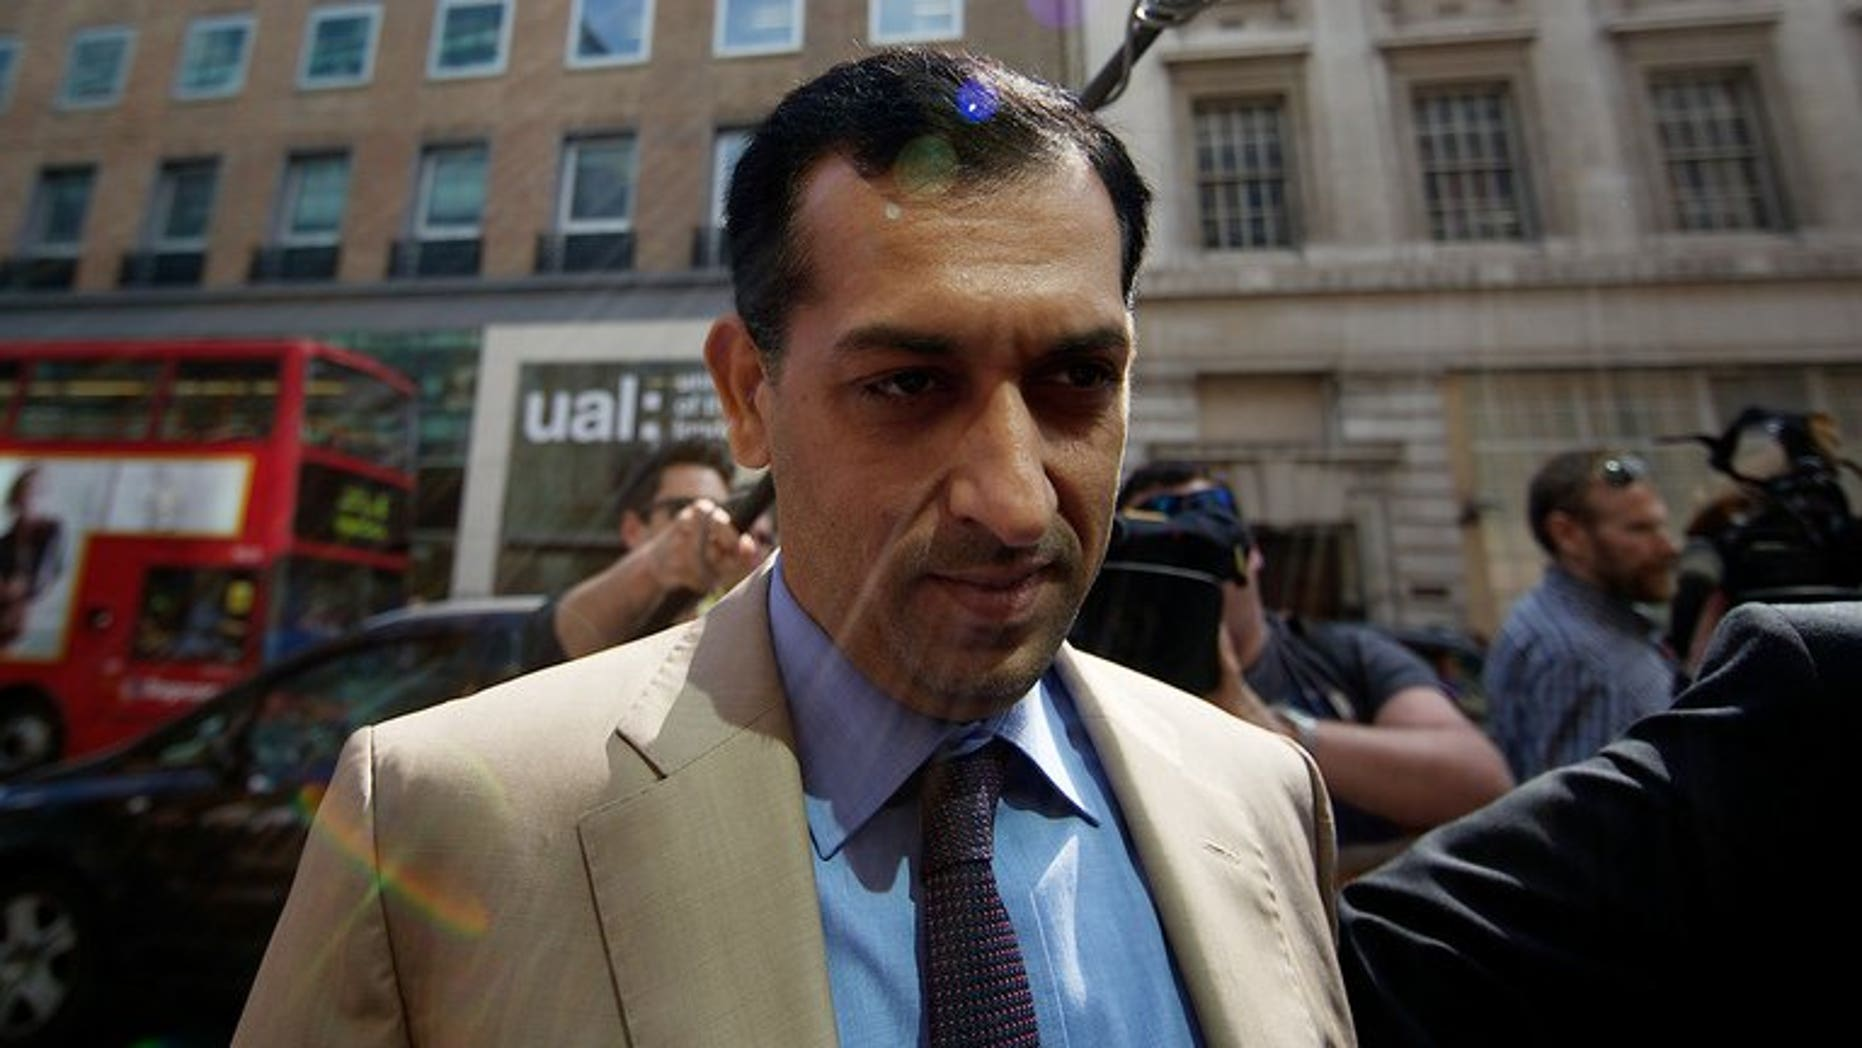 Godolphin trainer Mahmood al-Zarooni arrives for a disciplinary hearing at the British Horseracing Authority (BHA) in London on April 25, 2013. Godolphin are to face no further charges in relation to a doping scandal that saw one of the stable's leading trainers banned from racing for eight years, the British Horseracing Authority said.